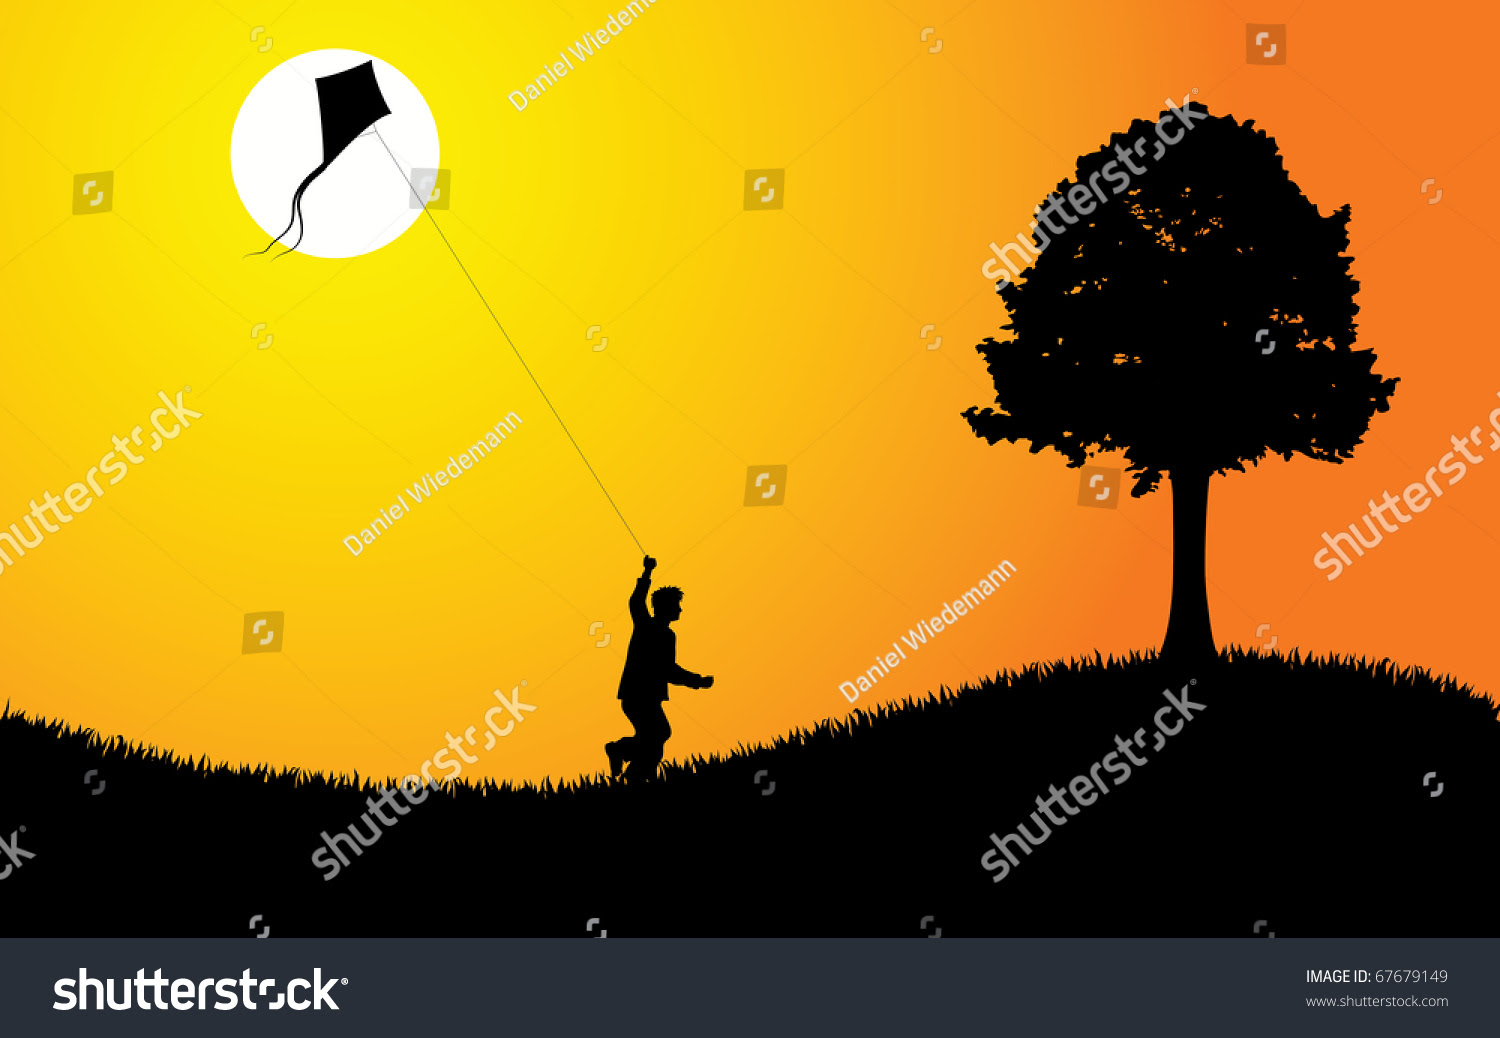 Young Boy Flying Kite Sunset Editable Stock Vector 67679149 ...